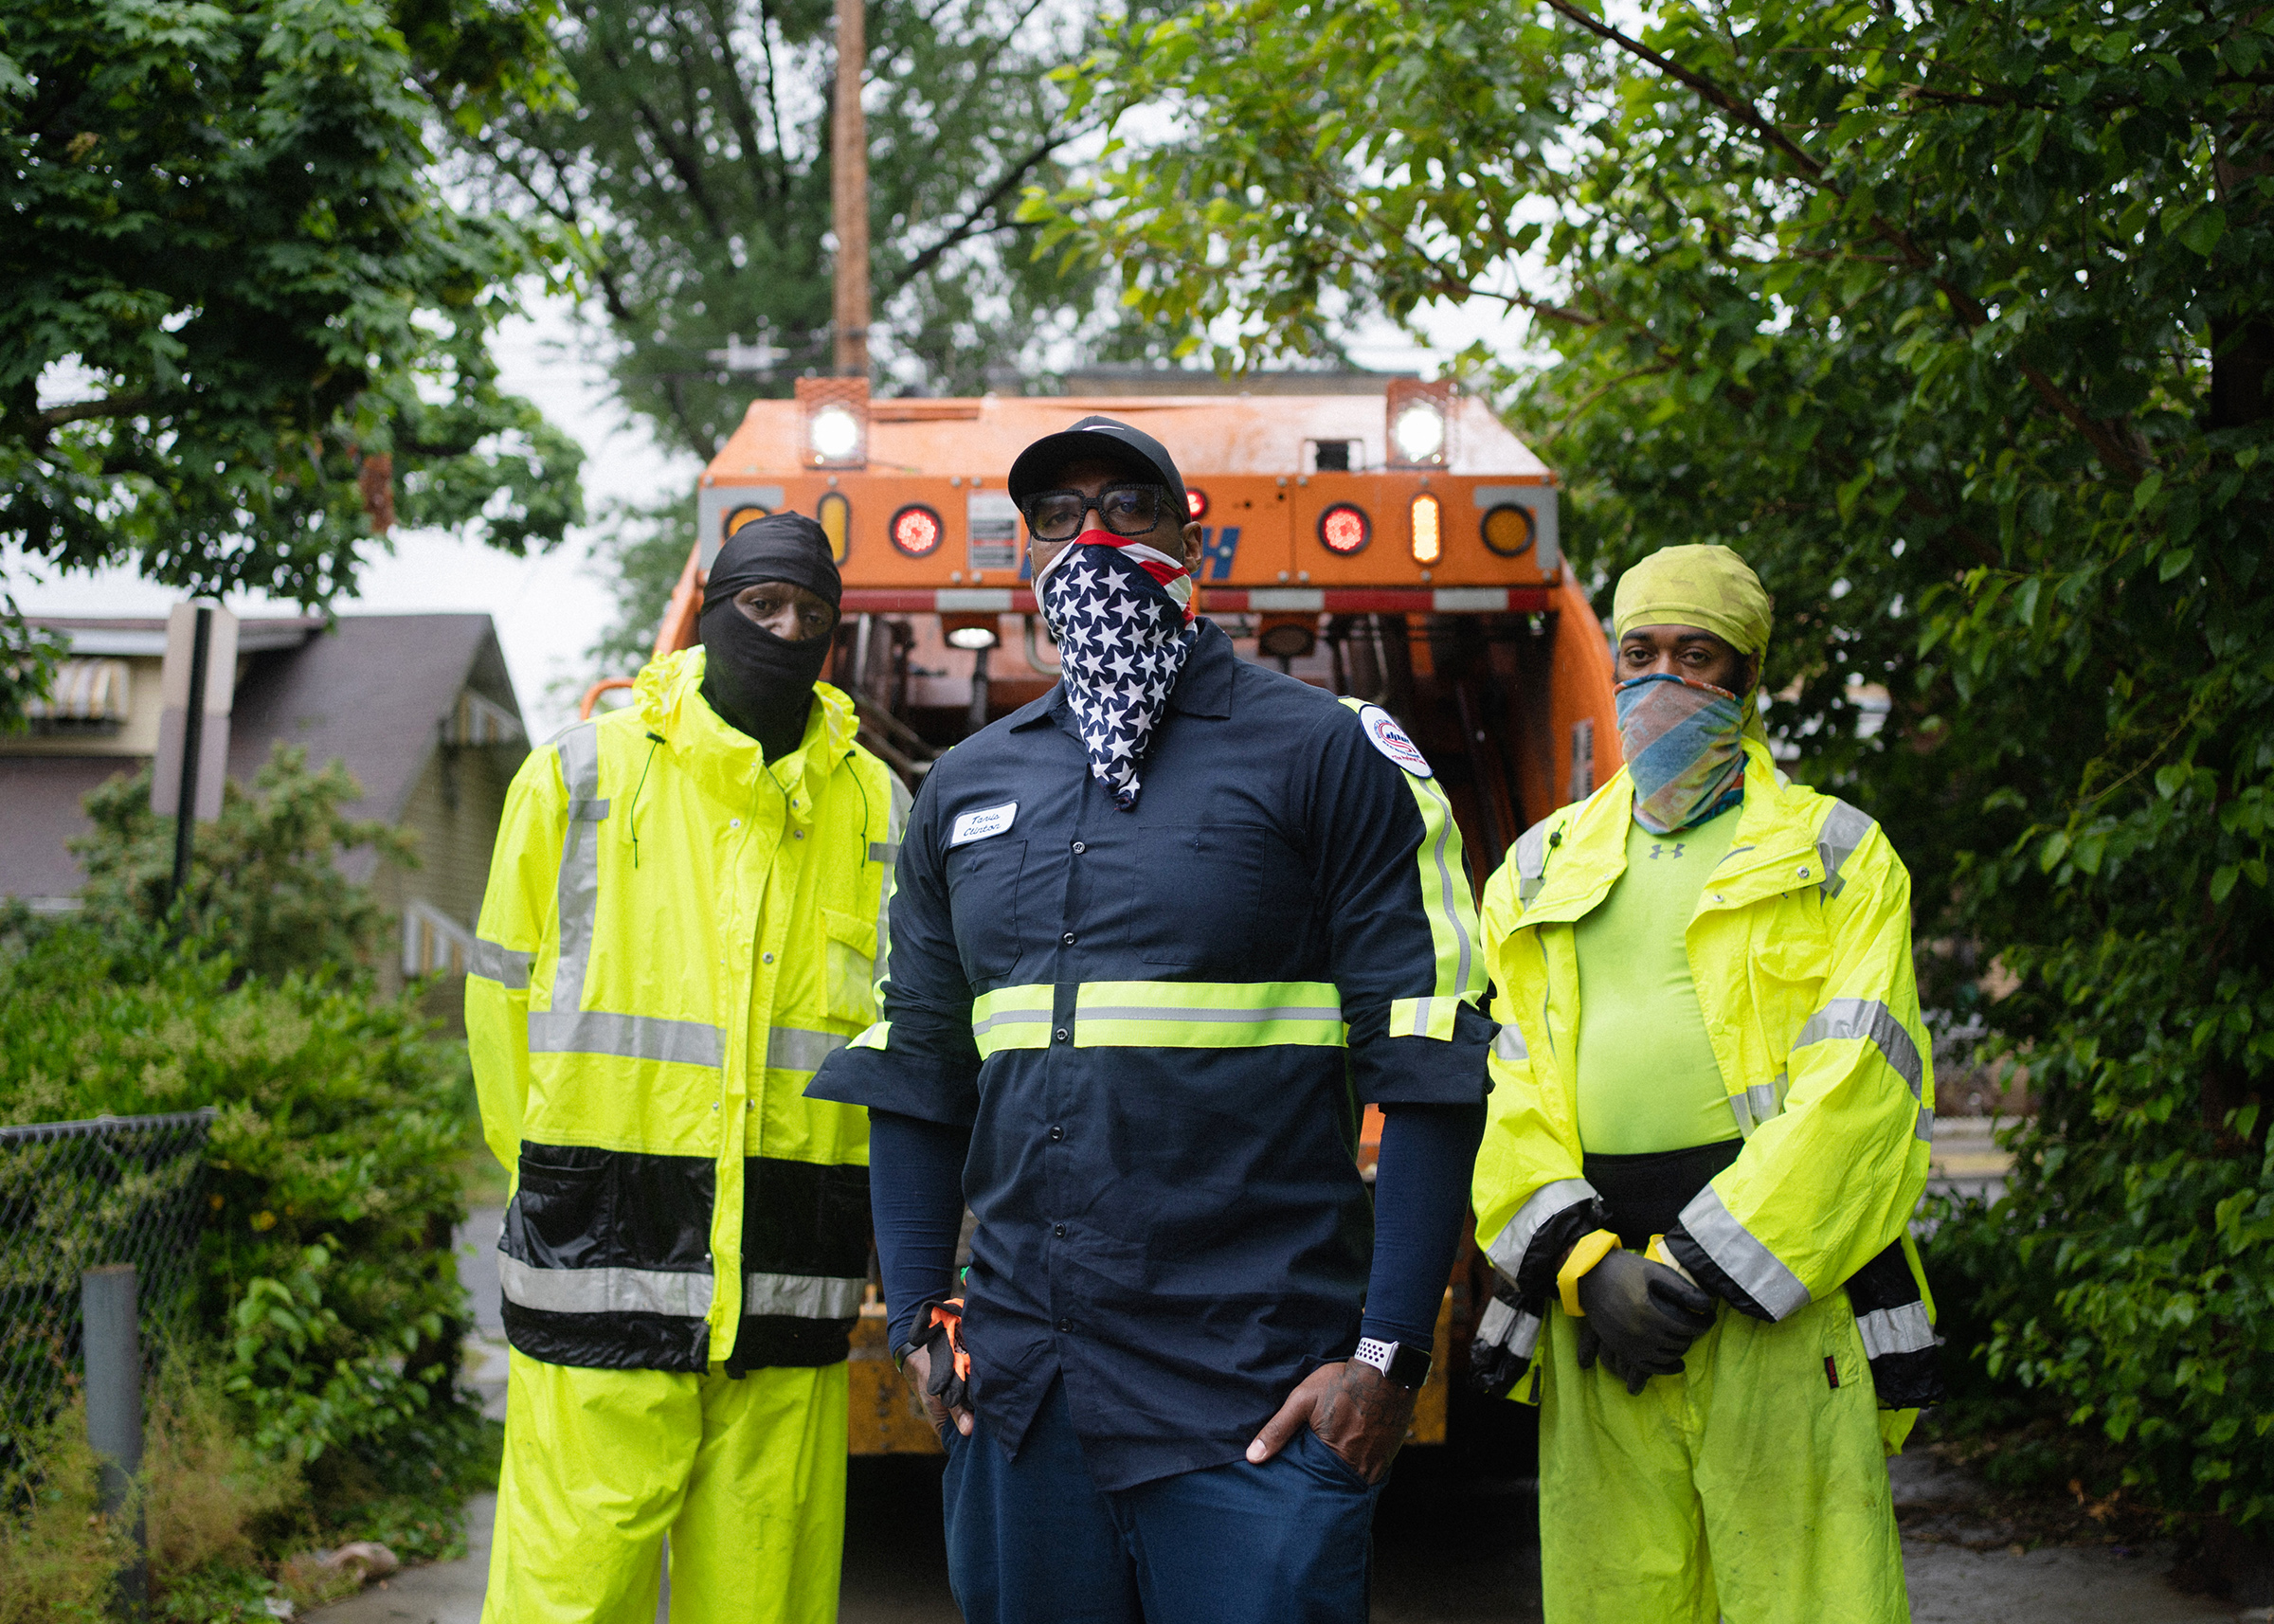 Sanitation crew chief Tavis Clinton, center, and sanitation workers Arvel Baylor, left, and Maurice Eley, right, stand behind their waste collection vehicle in Washington, D.C., on May 22, 2020.